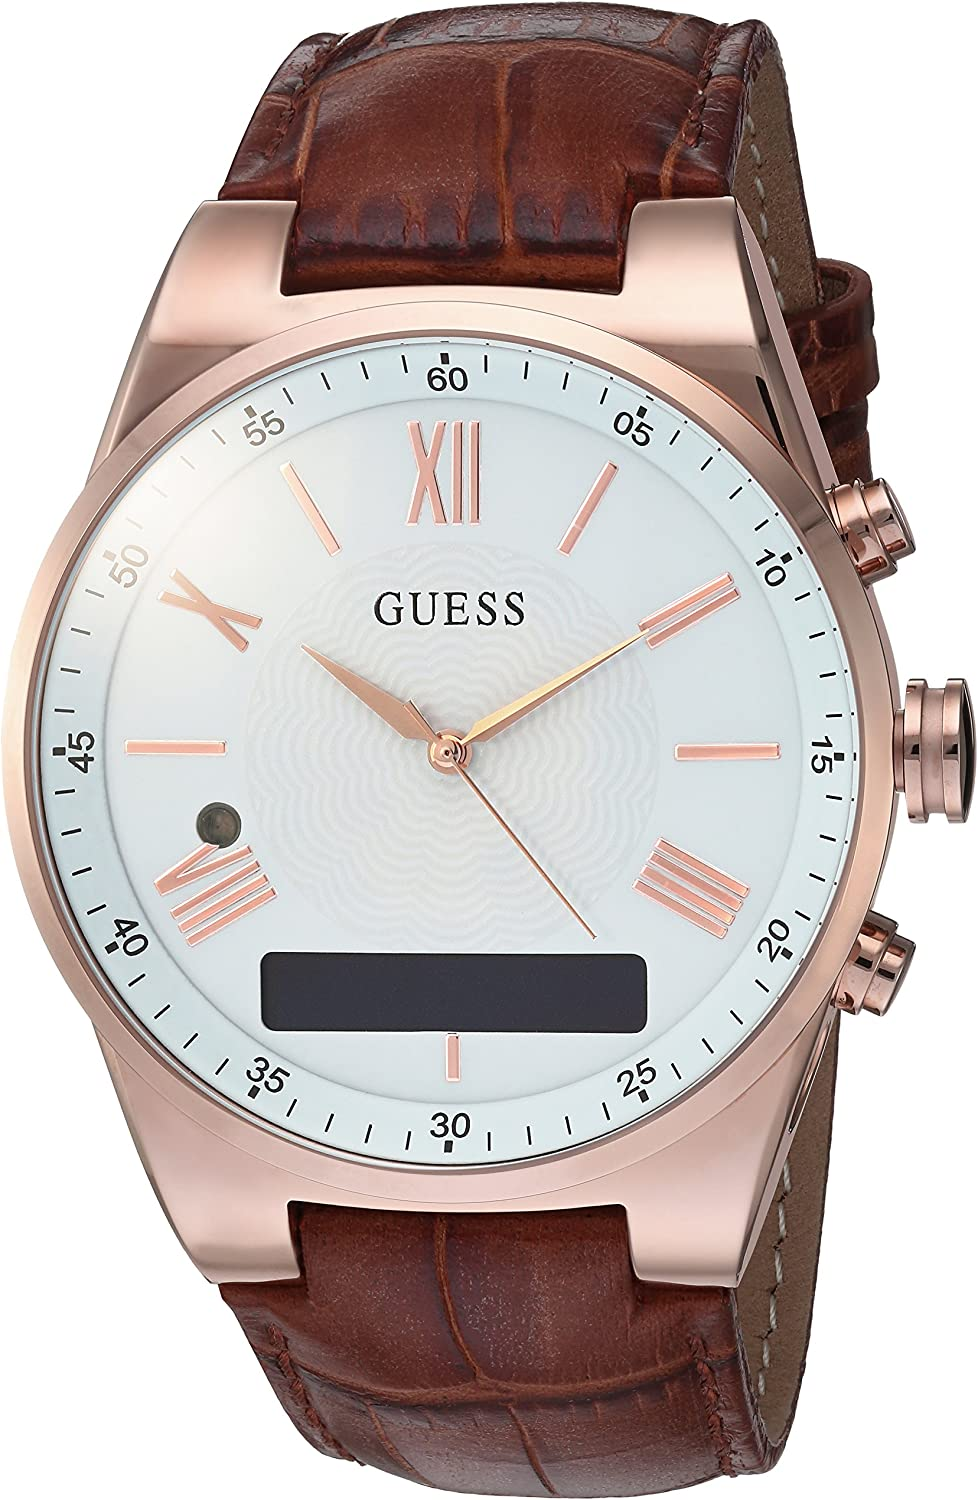 GUESS Men's Stainless Steel Connect Smart Watch - Amazon Alexa, iOS and Android Compatible, Color: Brown (Model: C0002MB4)